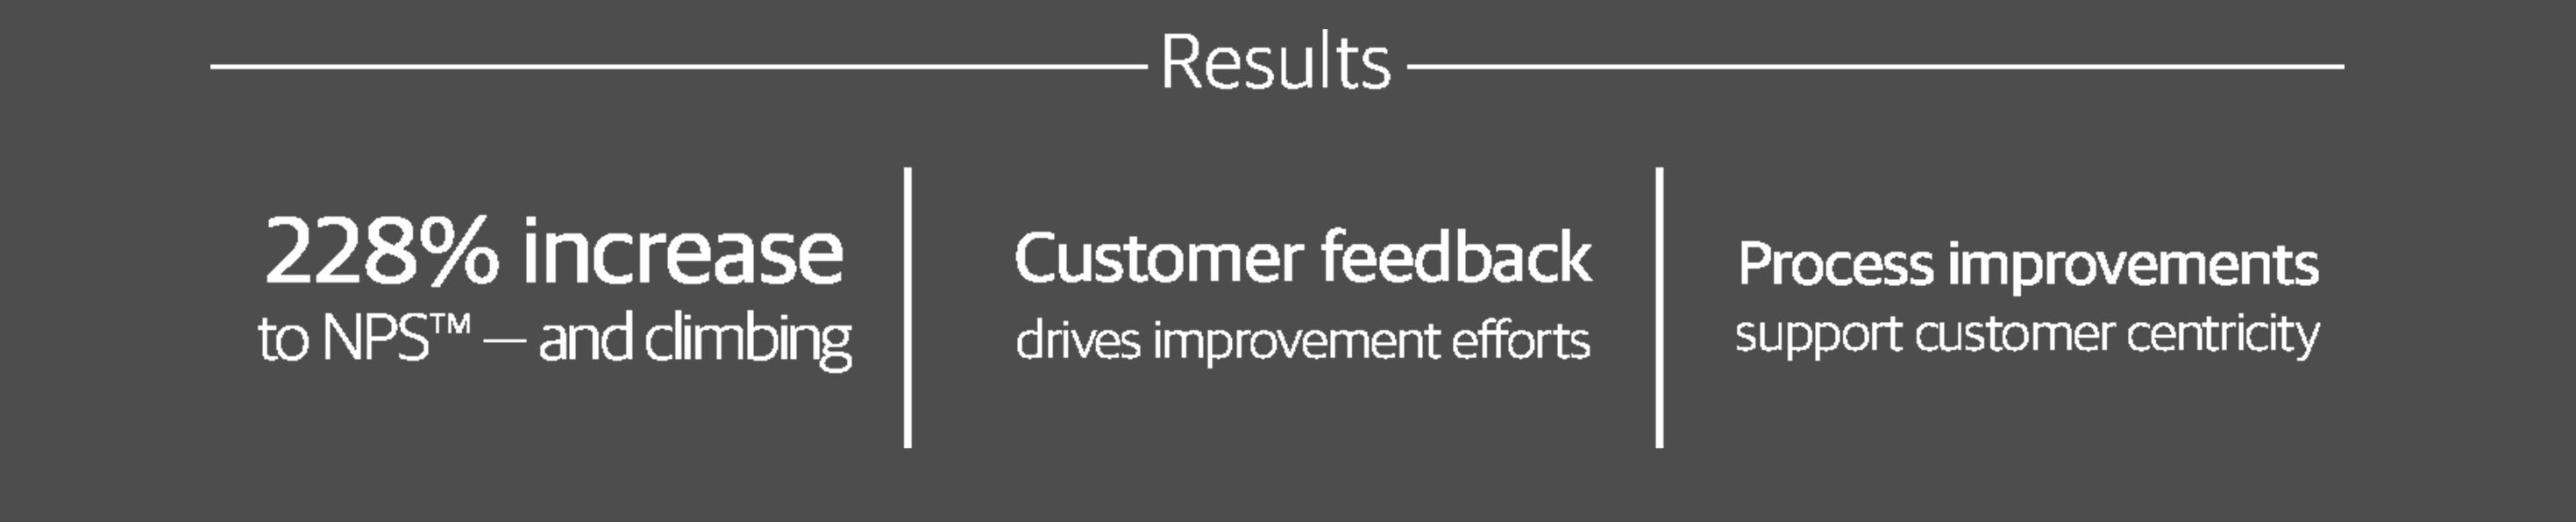 We were able to help integrate customer feedback into every part of this company